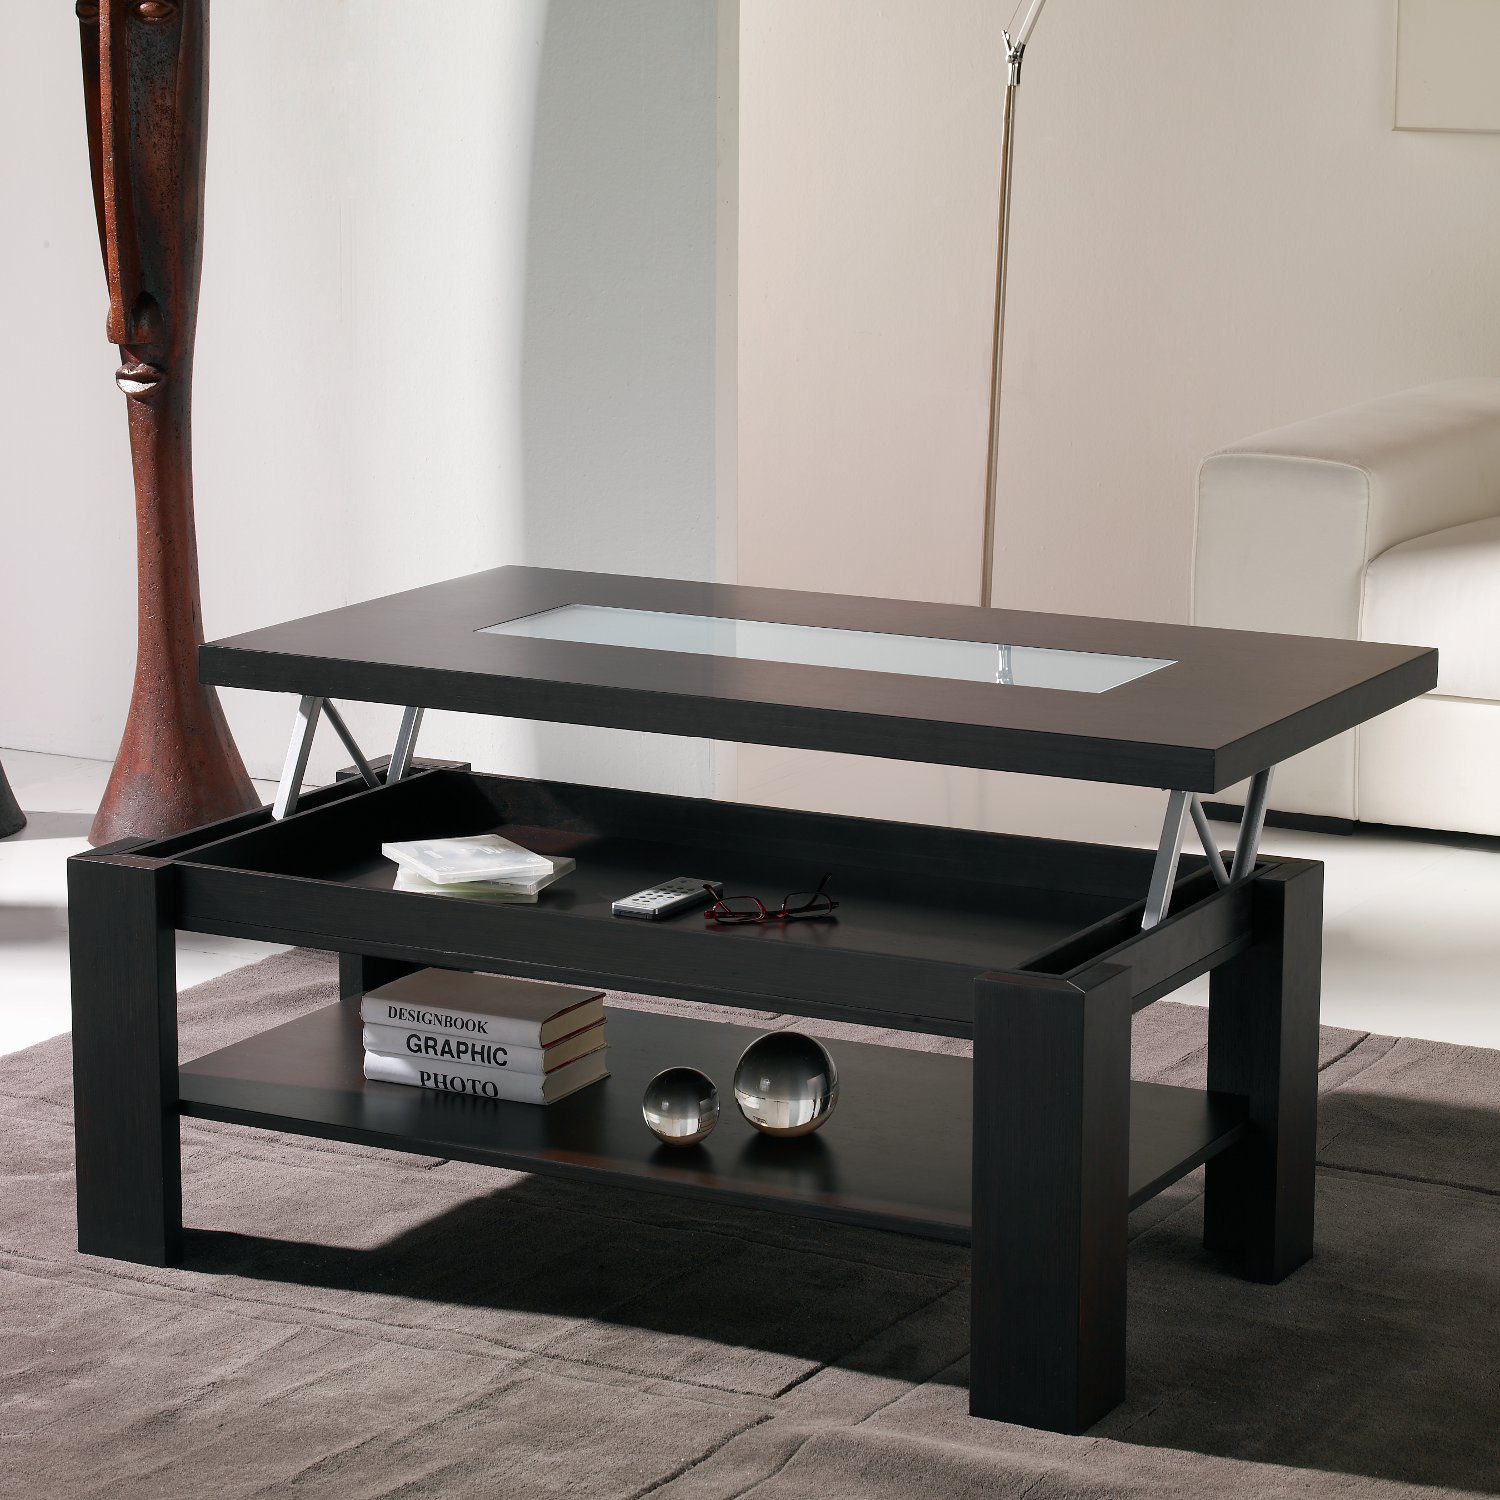 Table basse relevable de salon - Table basse relevable ...